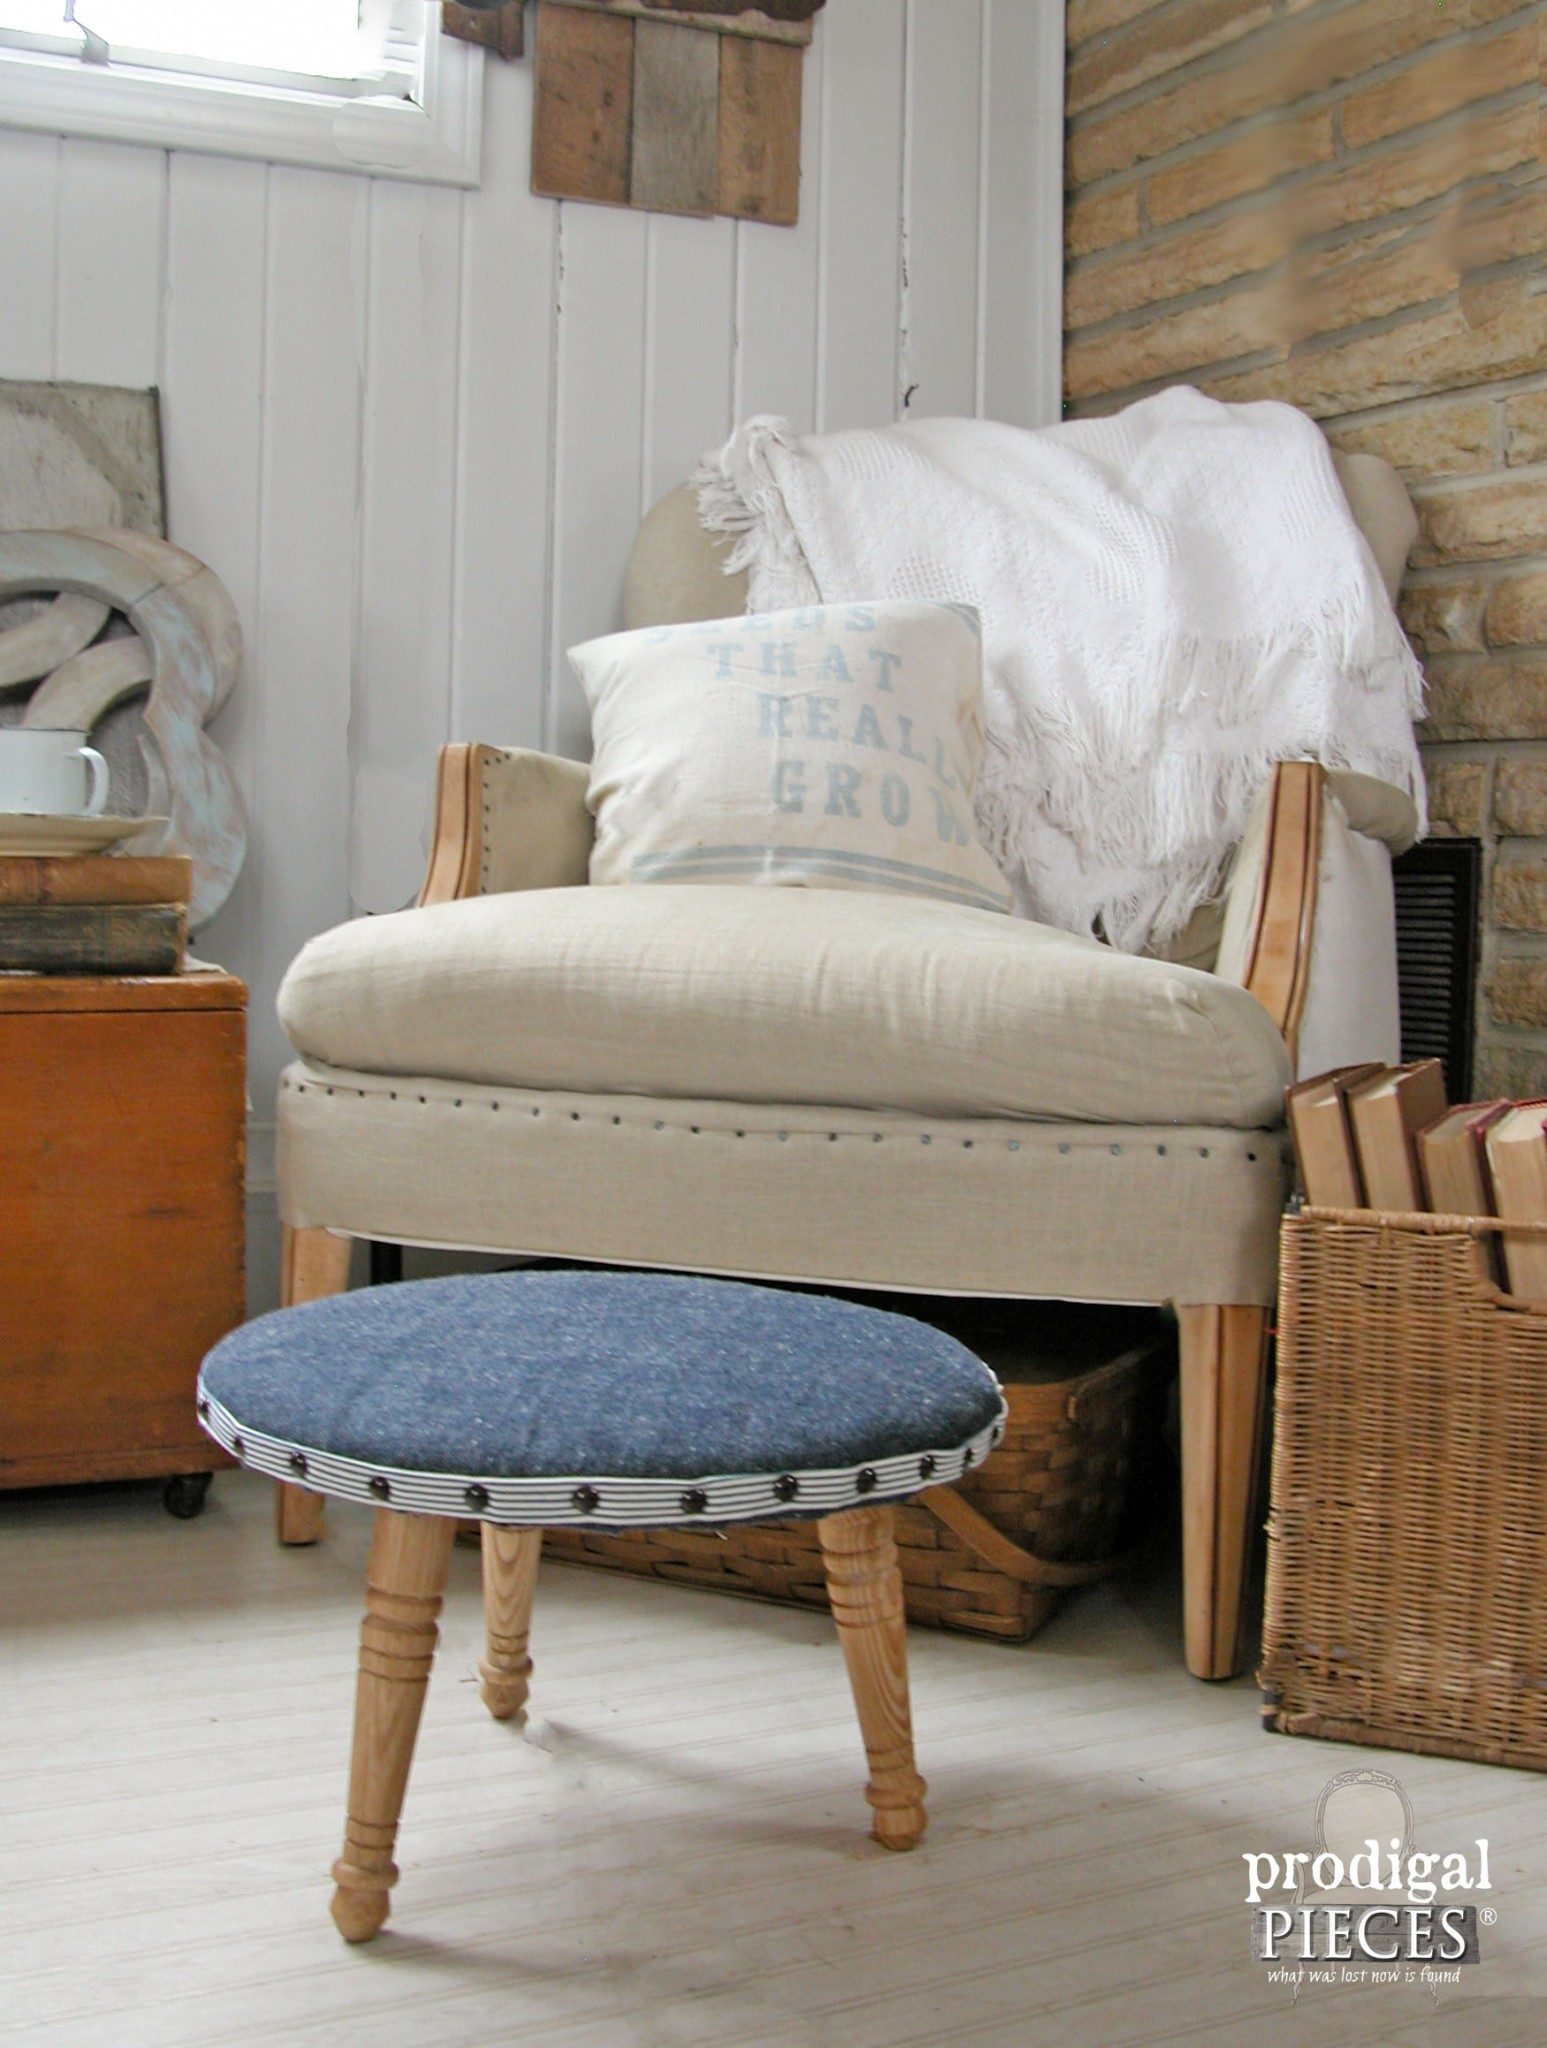 A Once Curbside Footstool Gets a Modern Update by Prodigal Pieces | www.prodigalpieces.com